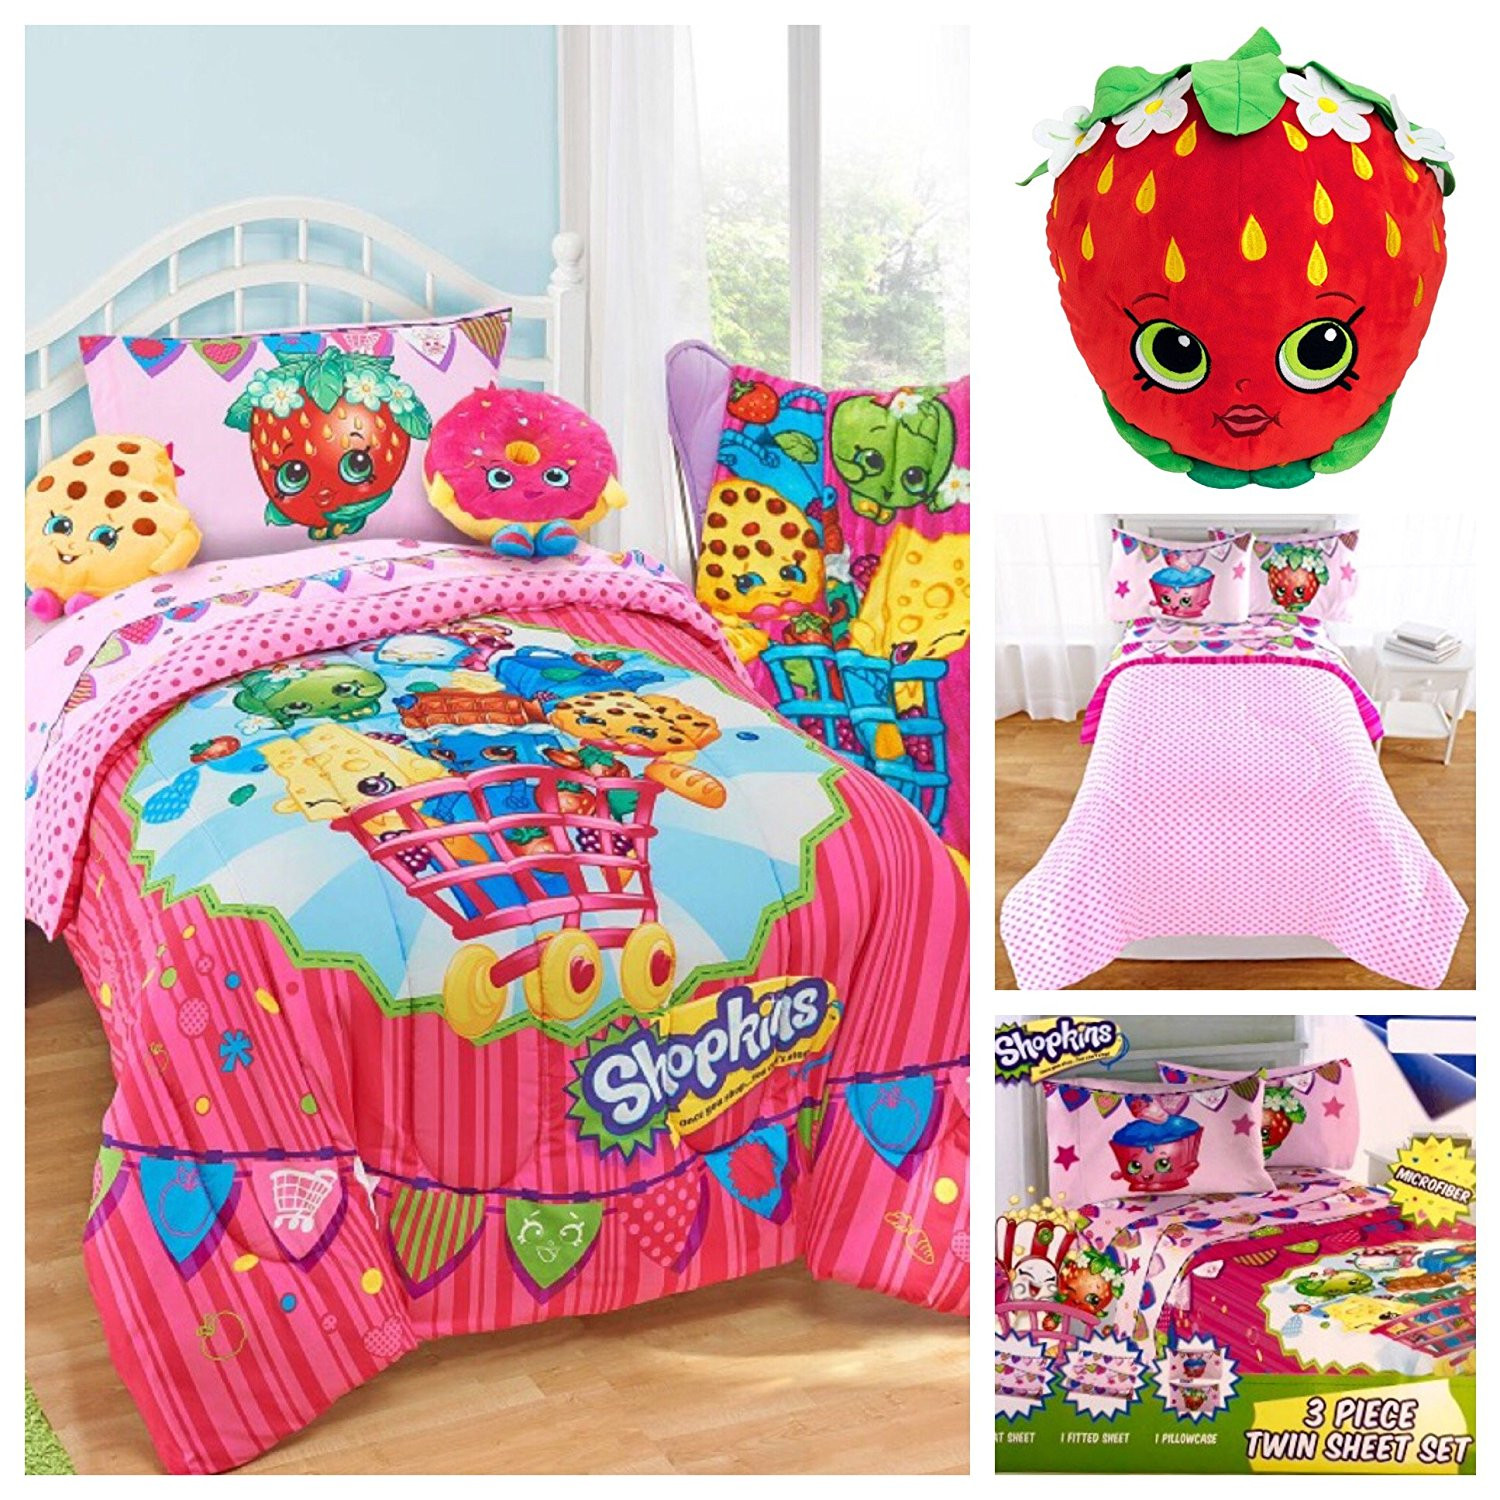 Shopkins Kids 5 Piece Bed in a Bag Twin Bedding Set Reversible Comforter, Microfiber... by